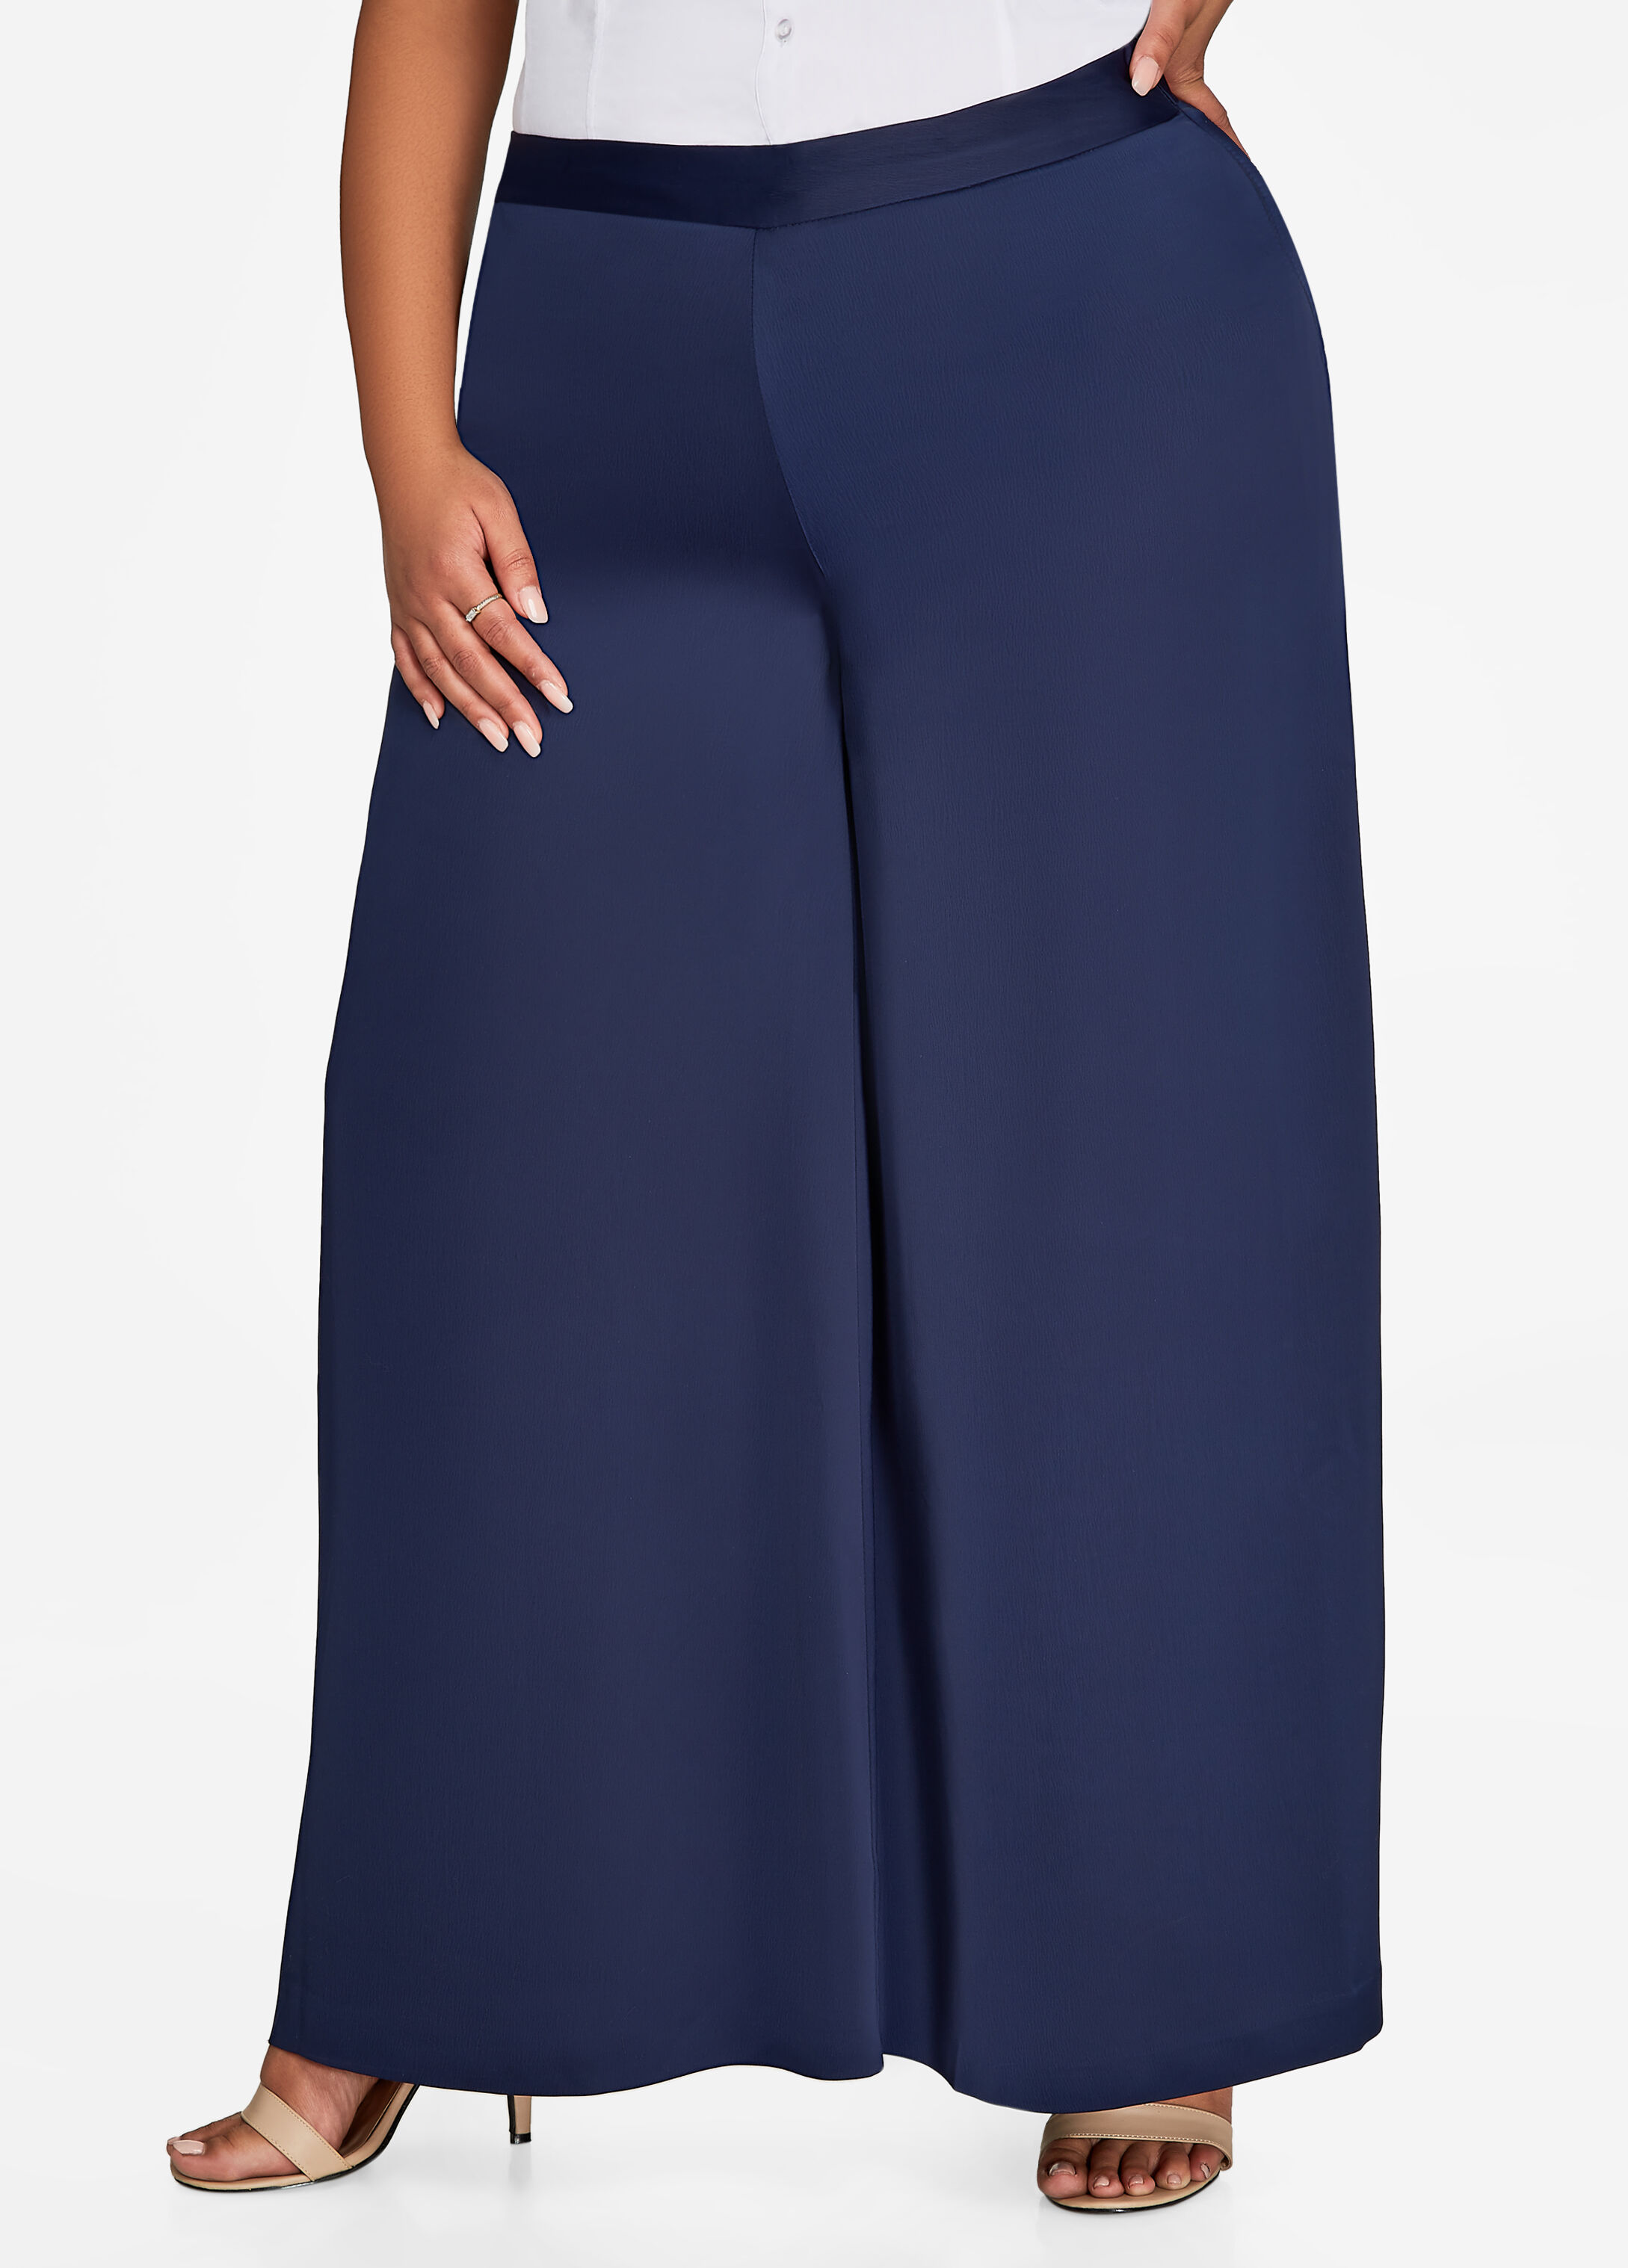 Pull-On Satin Wide Leg Dress Pant